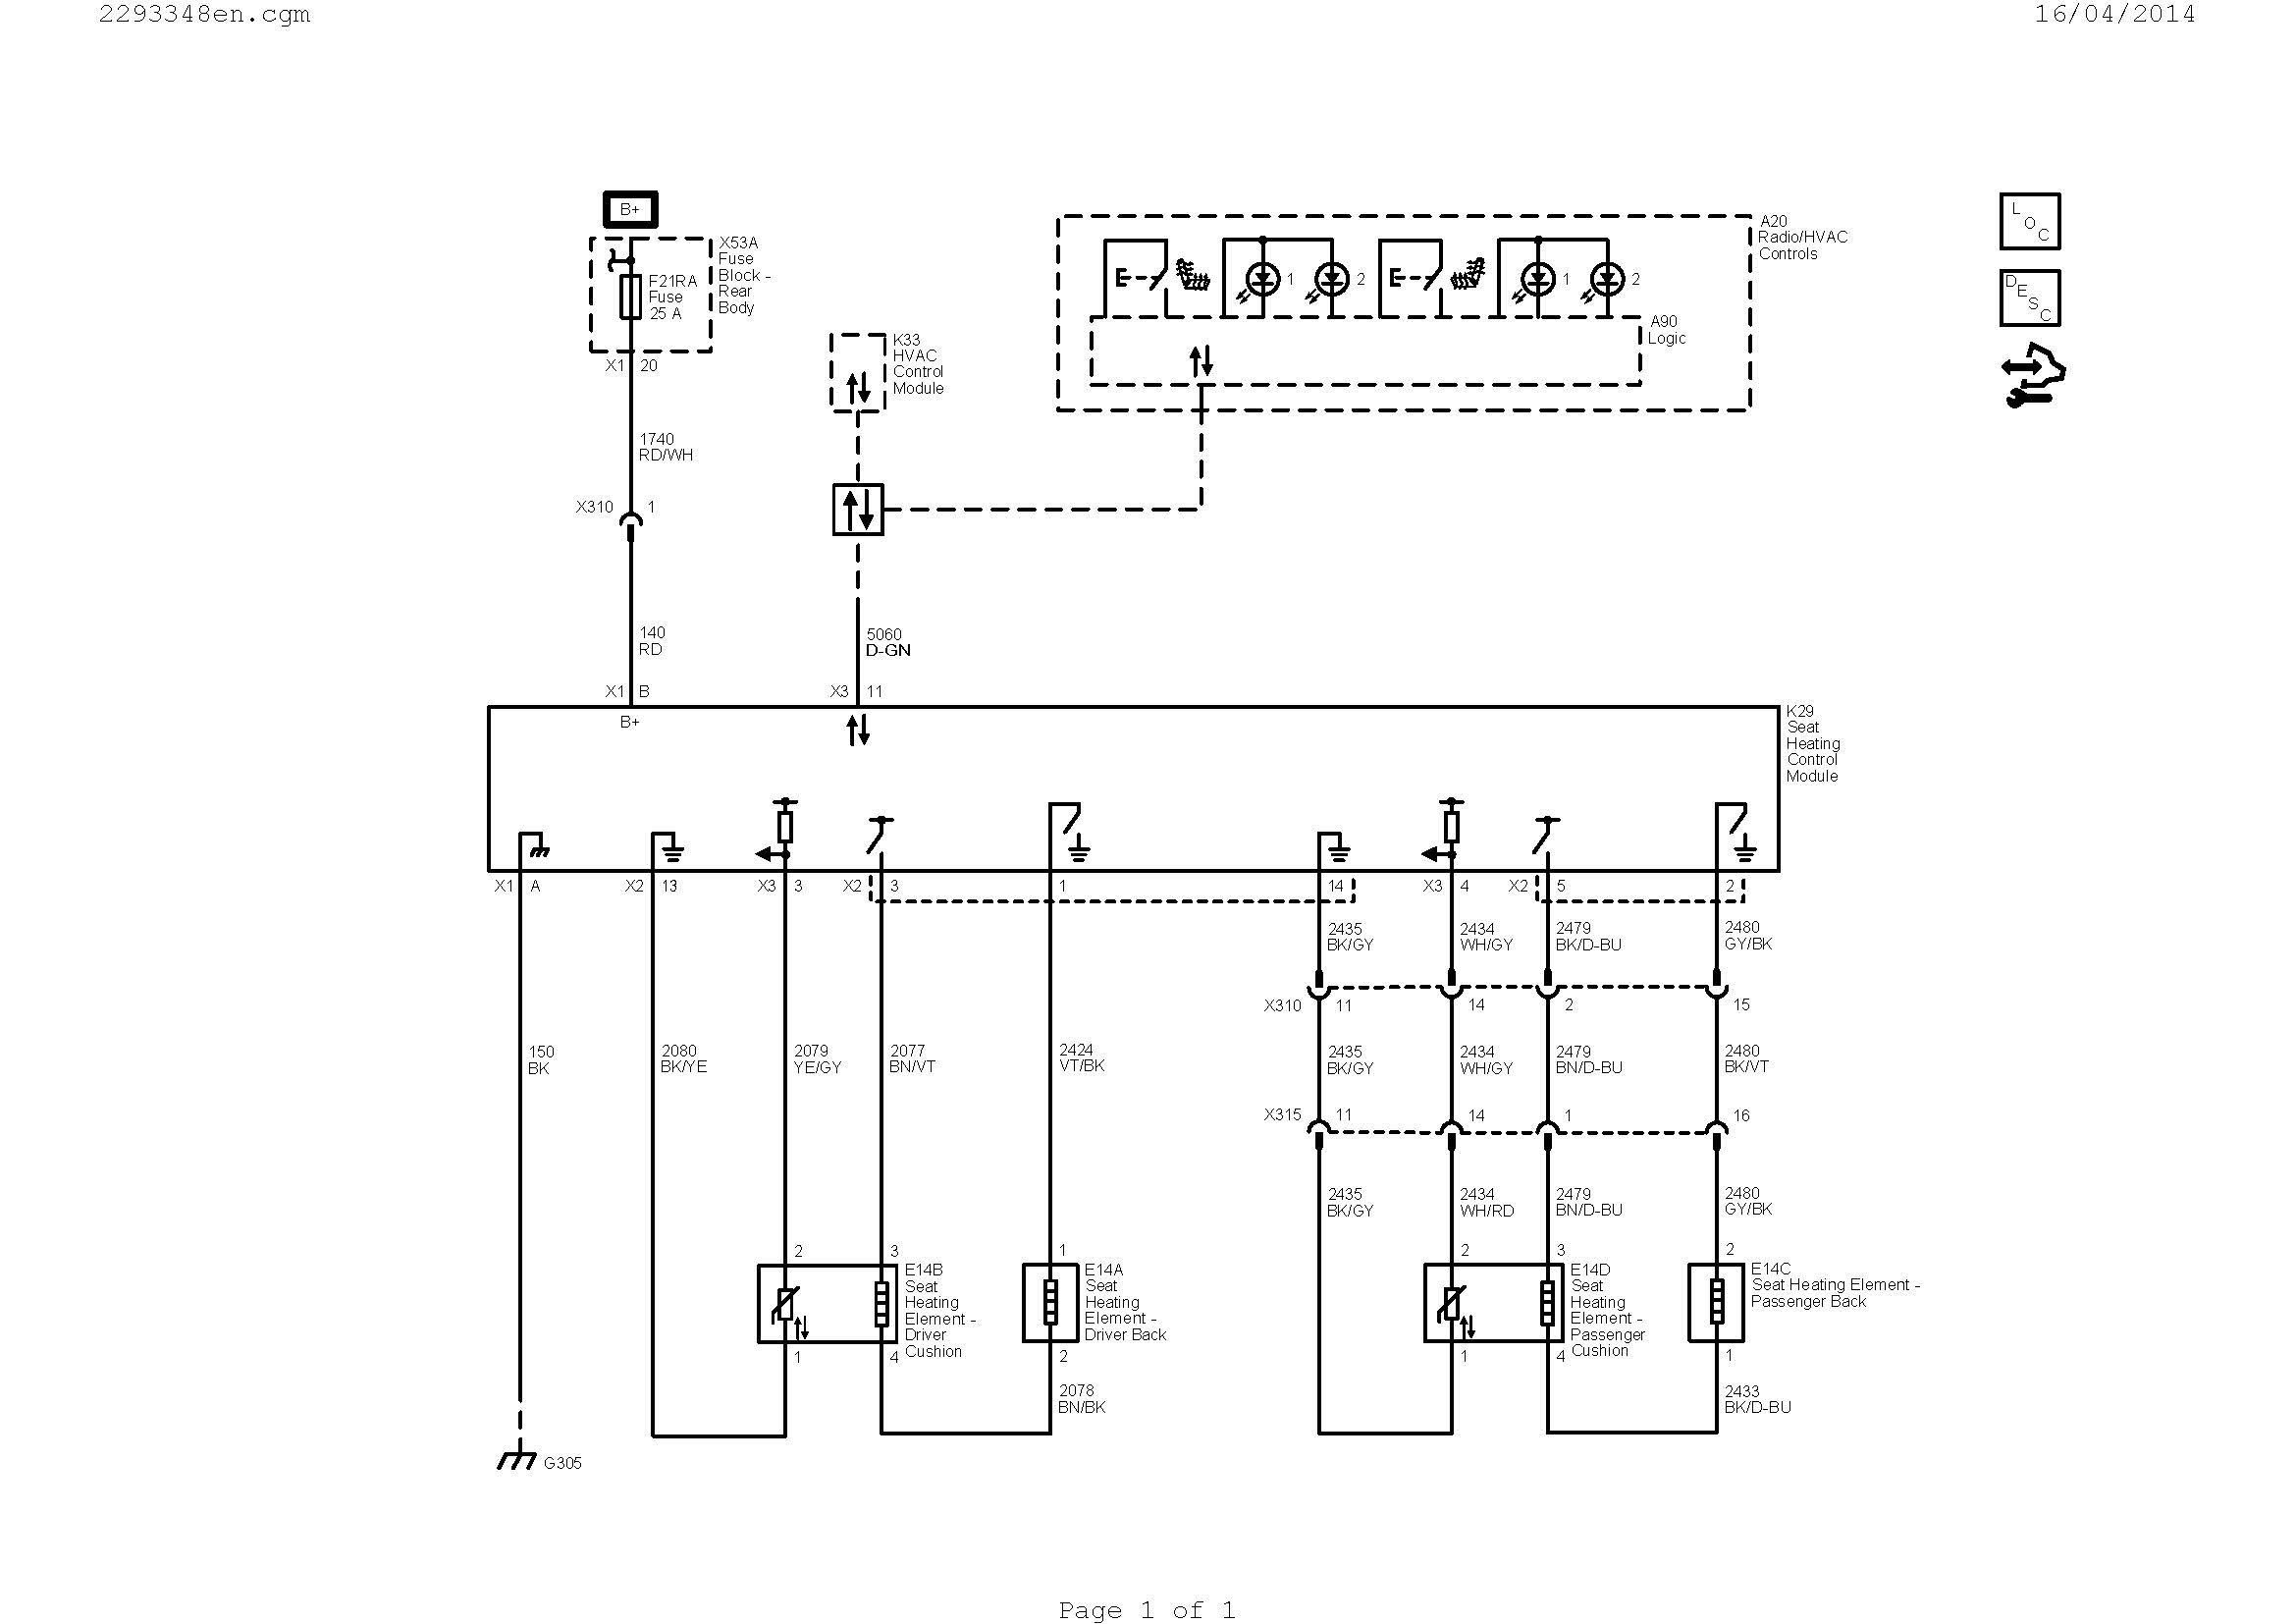 Wiring Diagram Symbols Collection Schematic Download Cad New Mechanical Engineering Diagrams Hvac Best